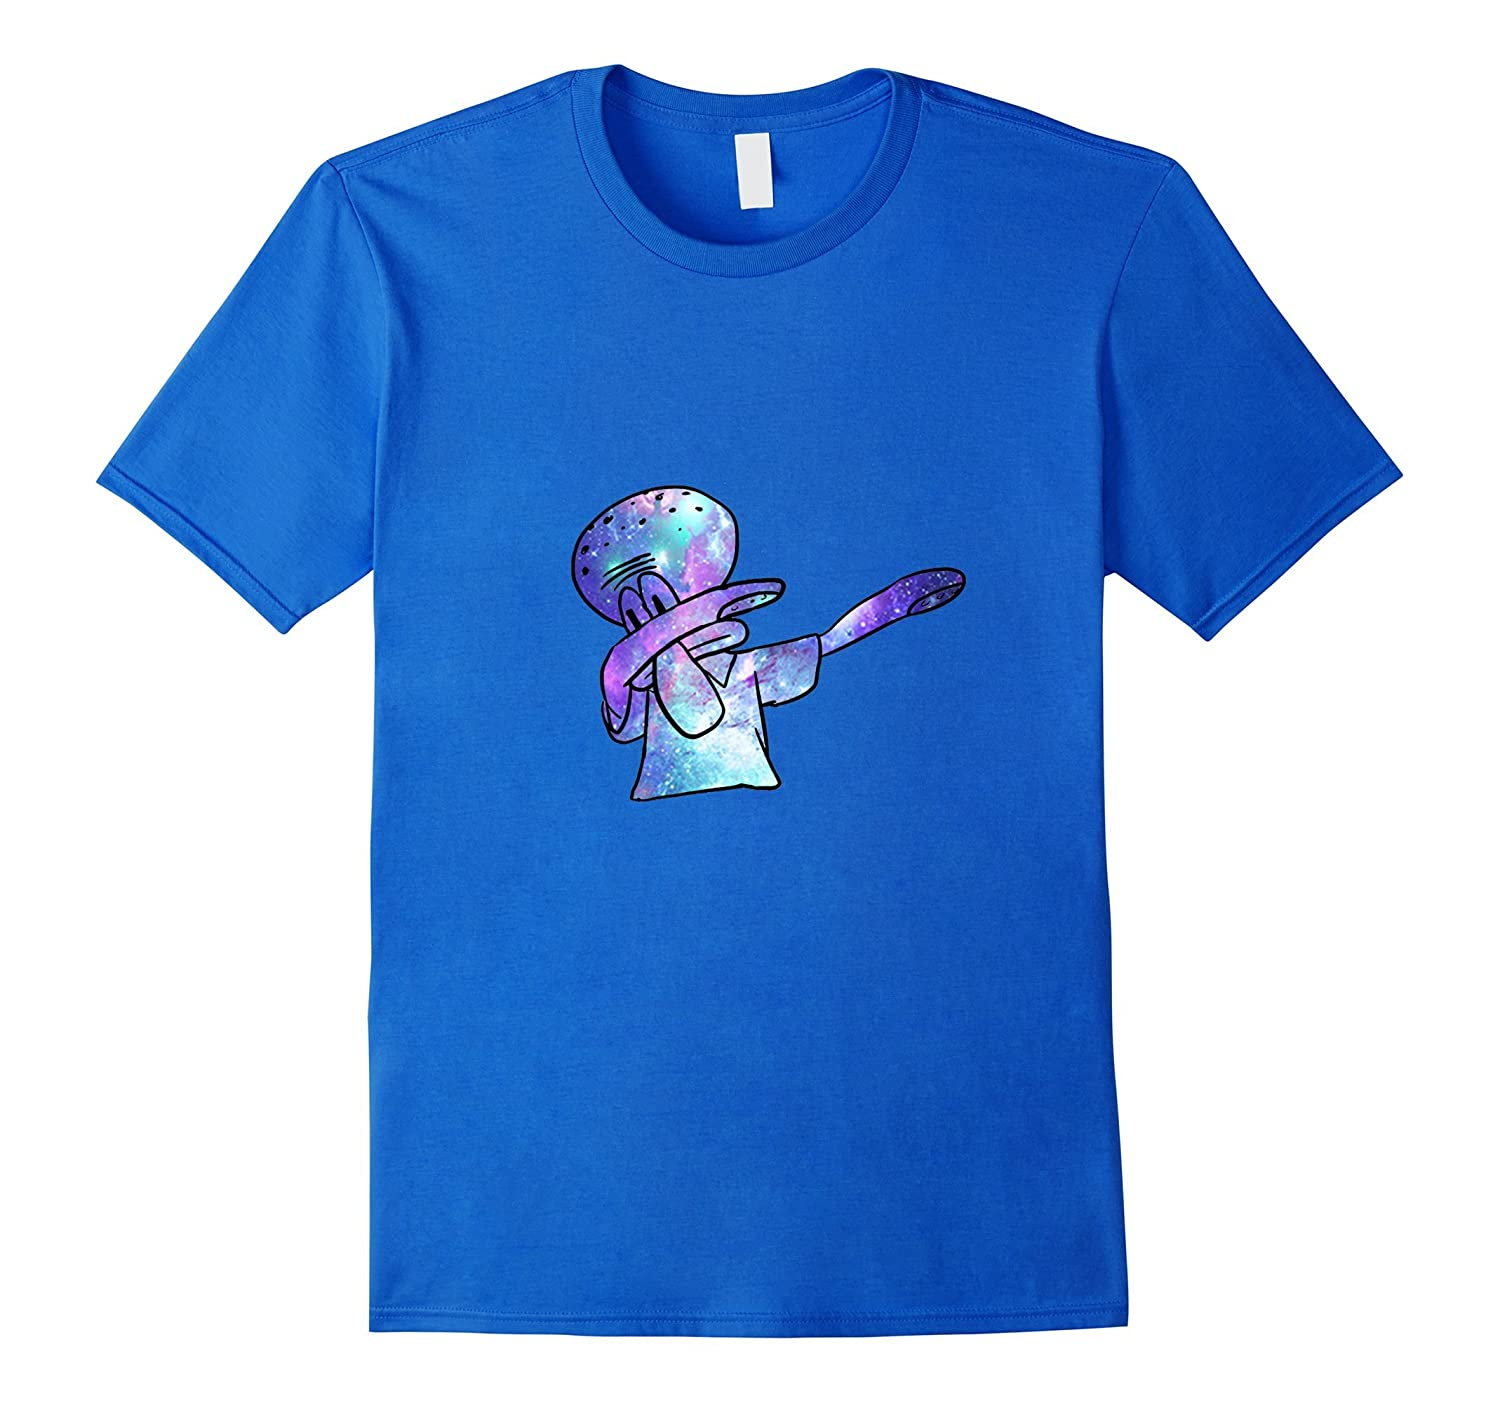 088d9a55de1 Squidward Dab T-Shirt Cosmic Galaxy Edition – Original-RT – Rateeshirt